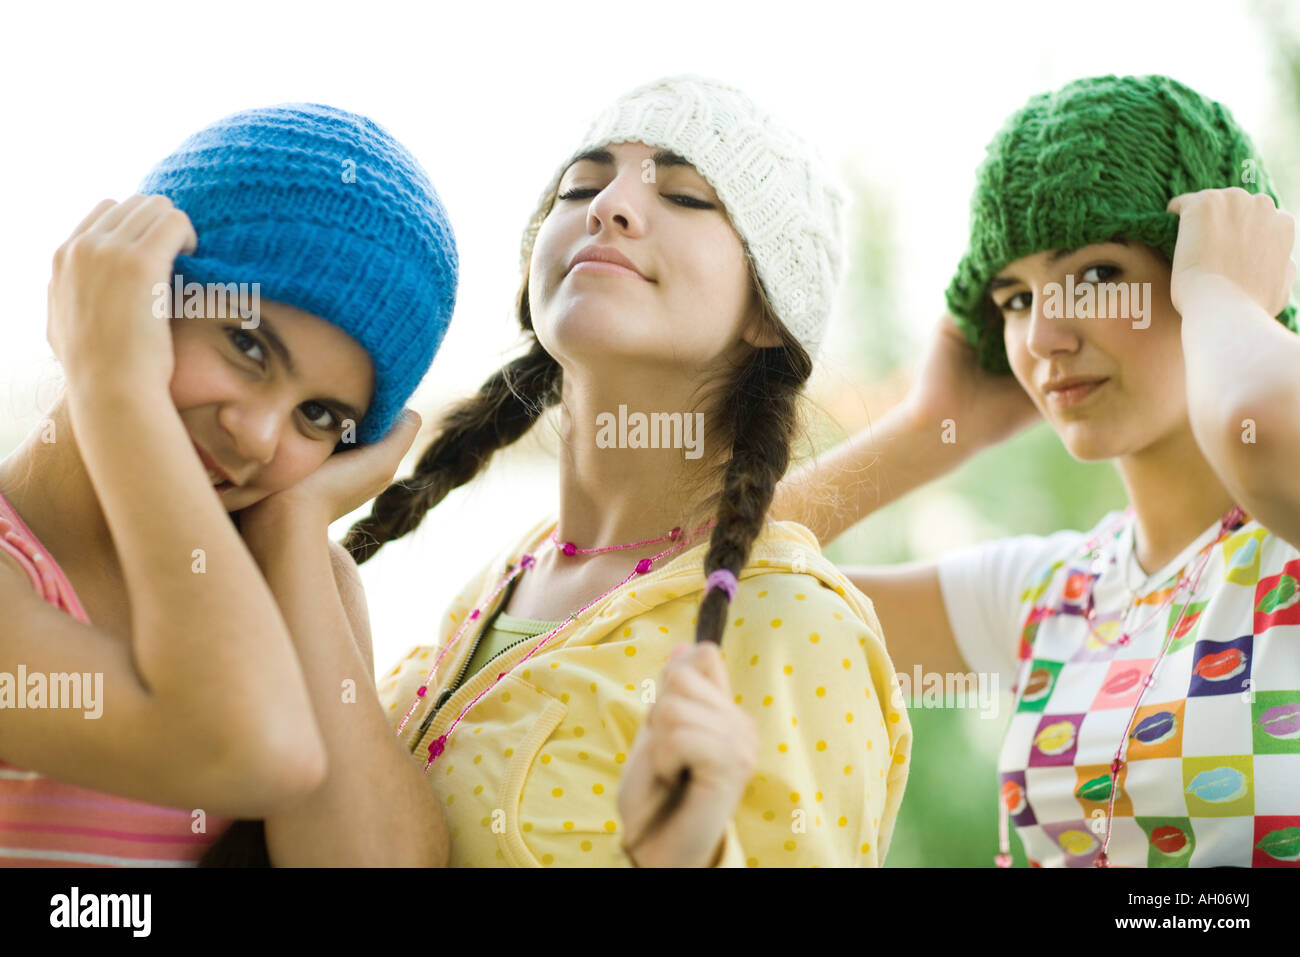 Young female friends wearing knit hats, looking at camera - Stock Image